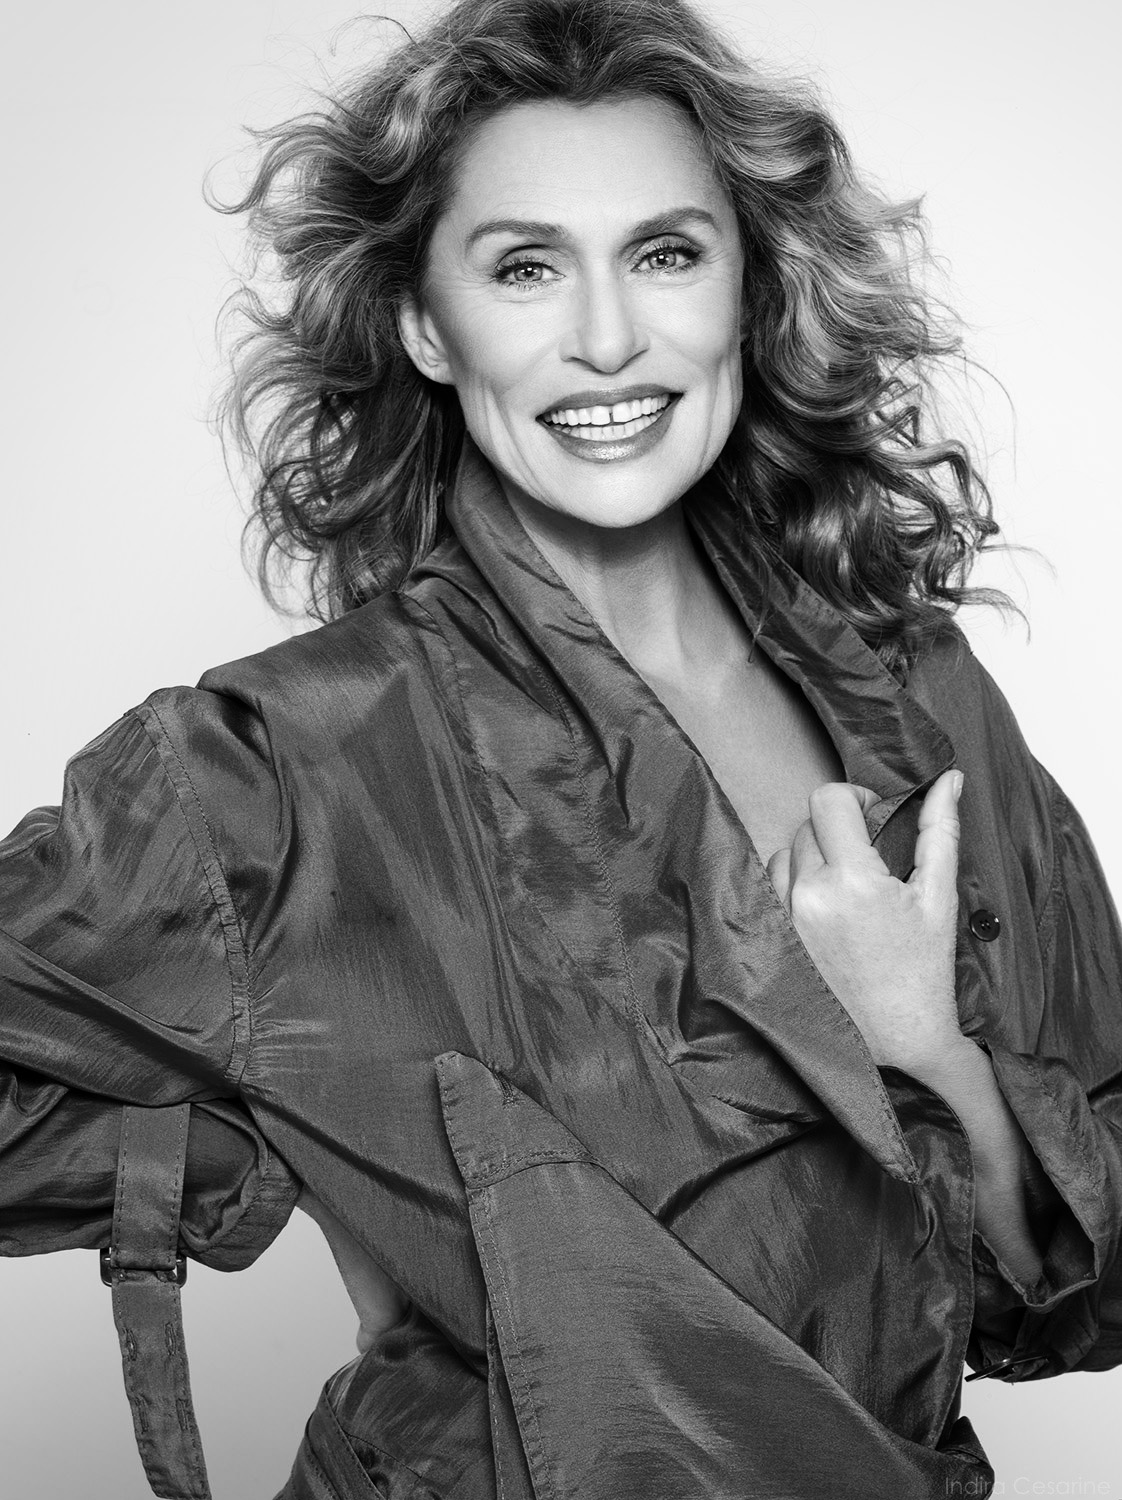 LAUREN-HUTTON-Photography-by-Indira-Cesarine-001-bw.jpg